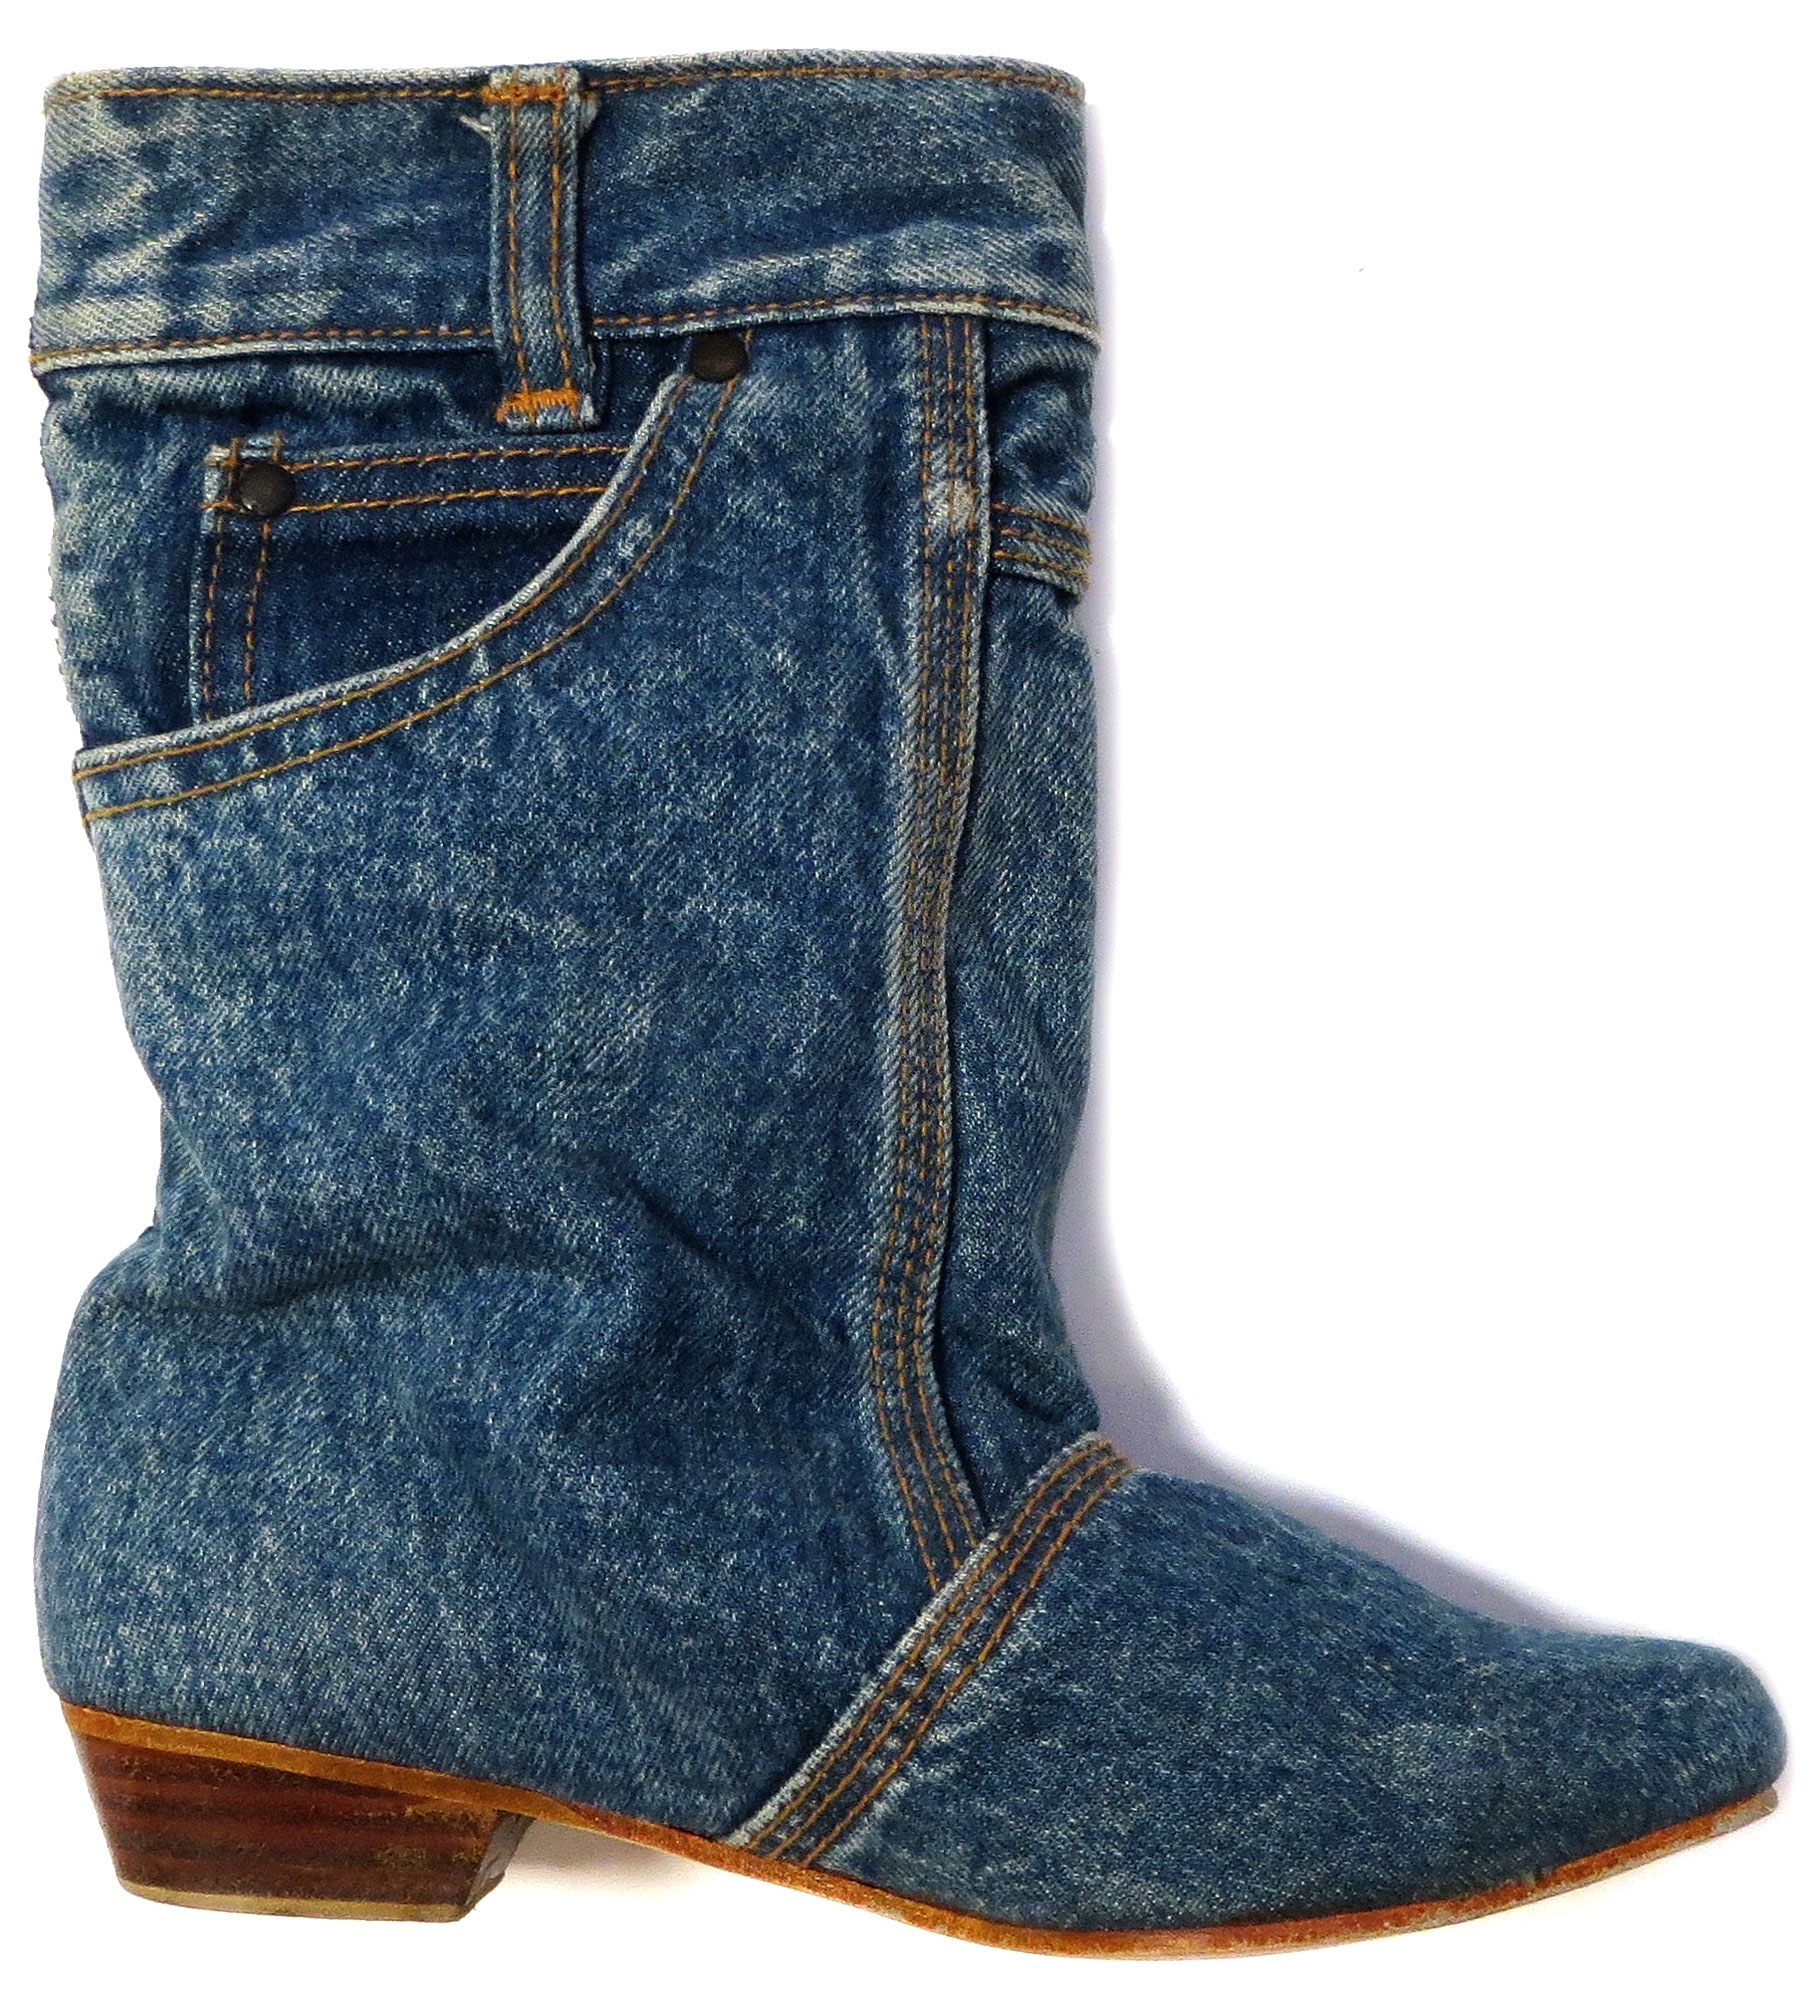 '80s Denim Scrunch Boot